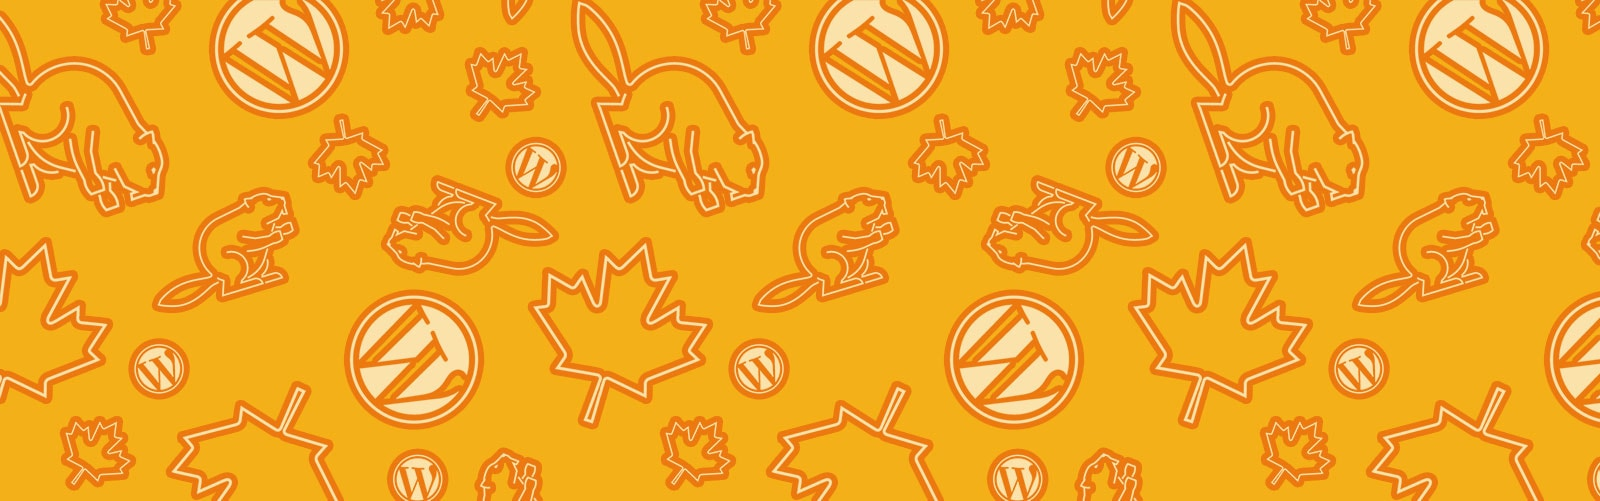 repeat pattern of beavers, maple leaves and WordPress logos in white against an orange background